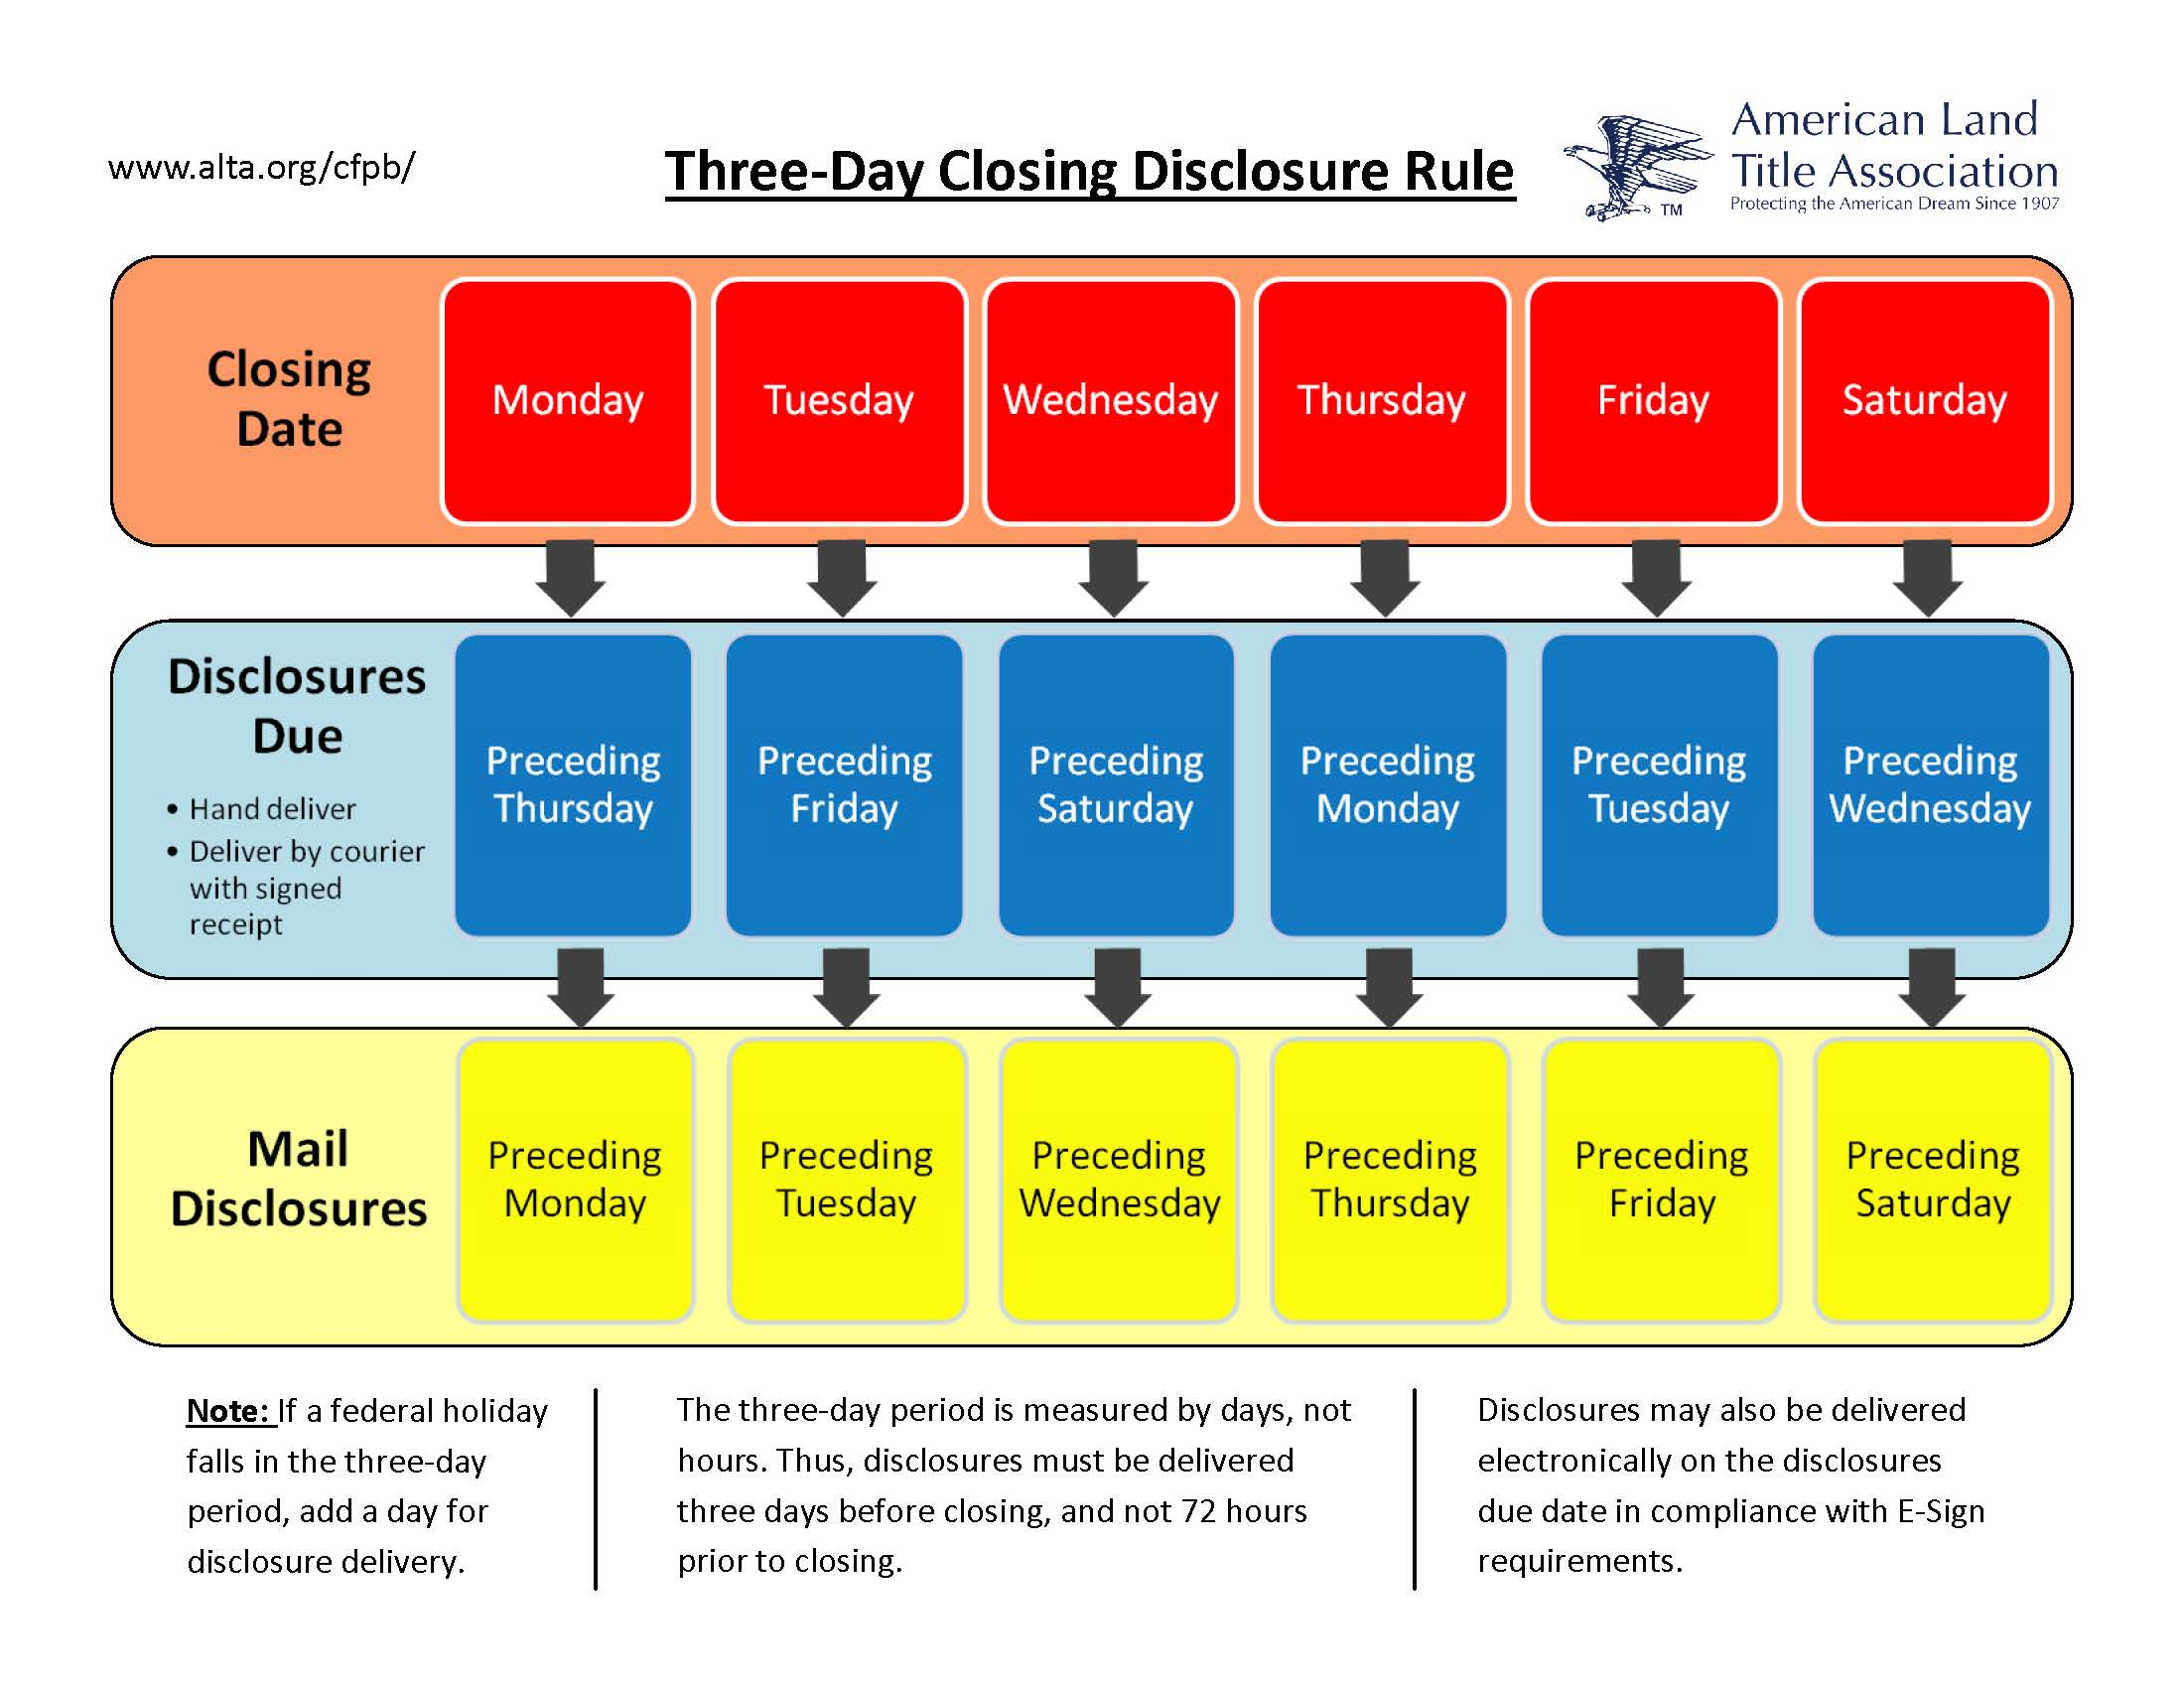 4 Days On 3 Days Off Work Schedule how to comply with the closing disclosure's three-day rule